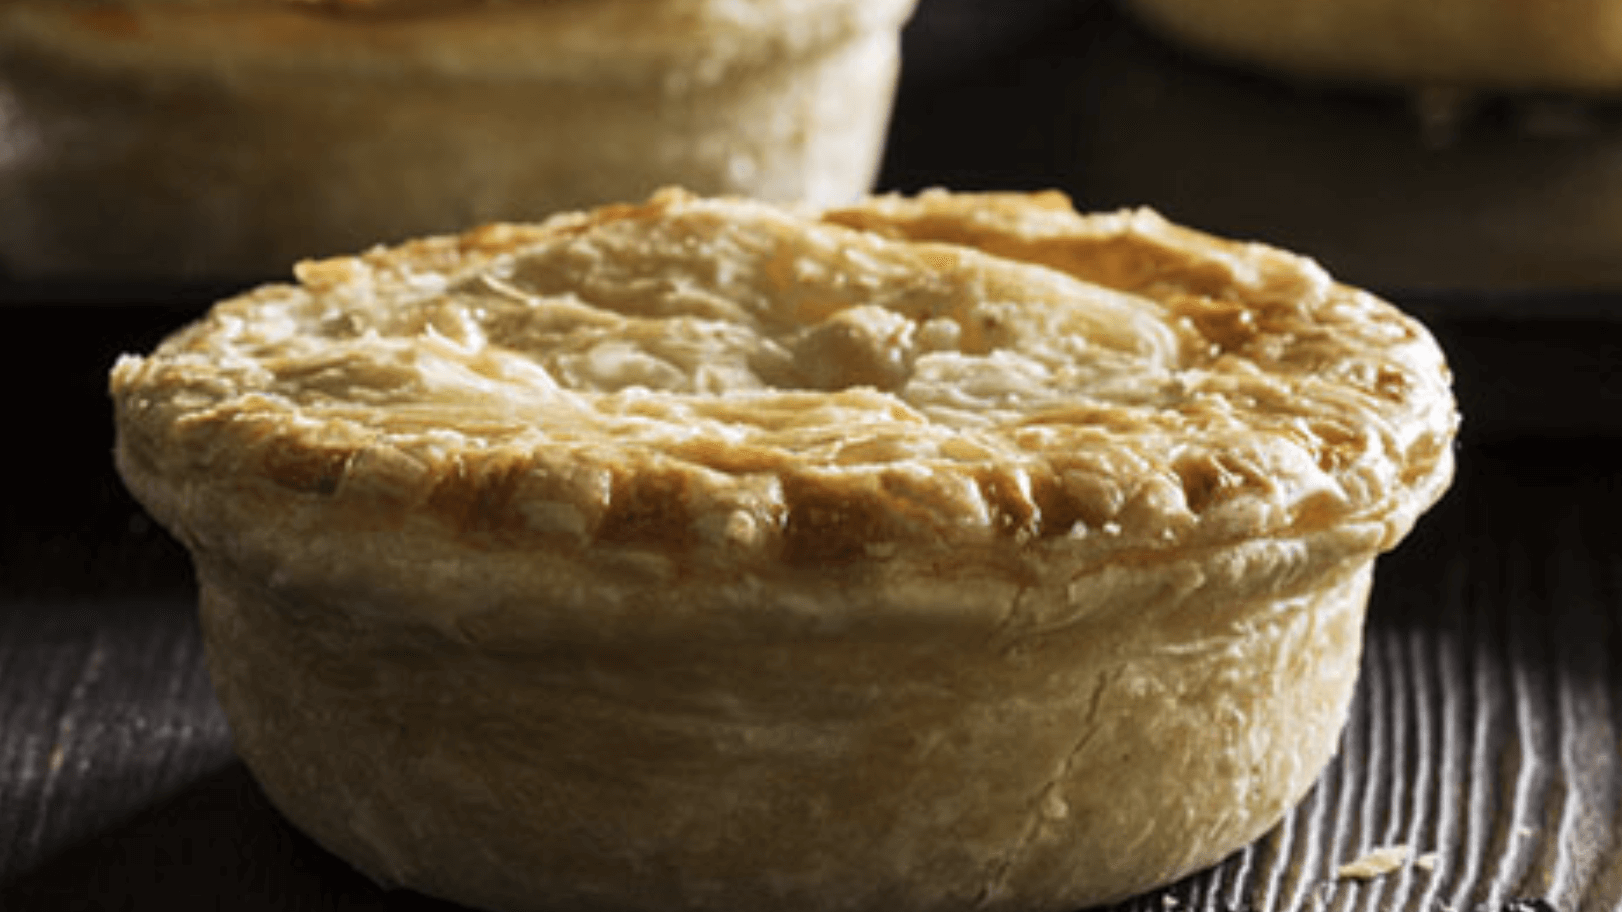 Vegan 'On the Go' Chana Masala Pie Now Available at New Zealand's Z Espress Petrol Station